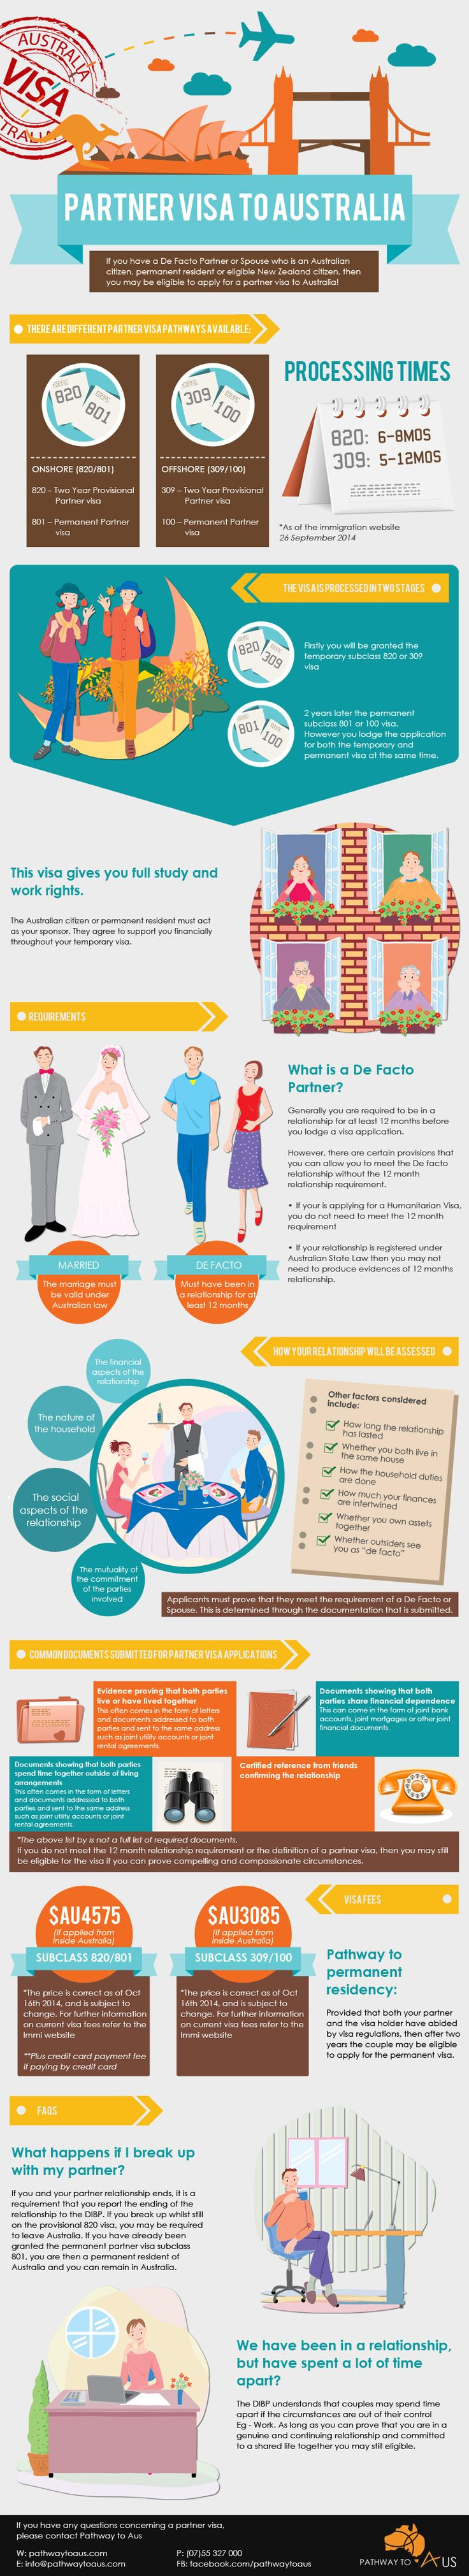 Partner Visa Australia. How to apply for a partner visa to Australia. Migration. De Facto. Visa Australia. Find out more with Pathway to Aus Education and Migration. W:www.pathwaytoaus.com E:info@pathwaytoaus.com P: (07)55 327 000